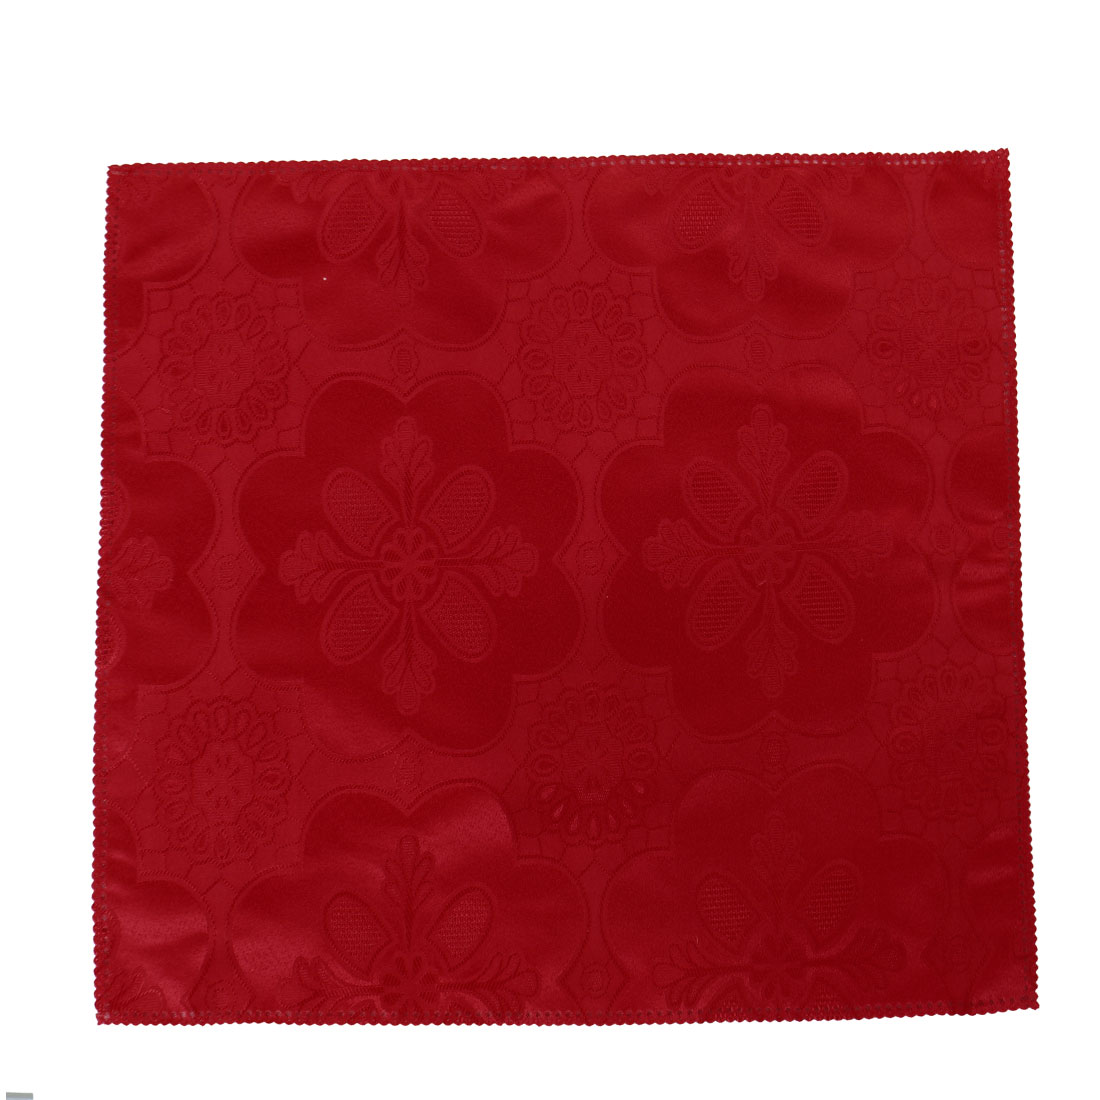 Hotel Fabric Square Table Glass Decor Cleaning Dinner Cloth Napkin Red 50 x  50cm